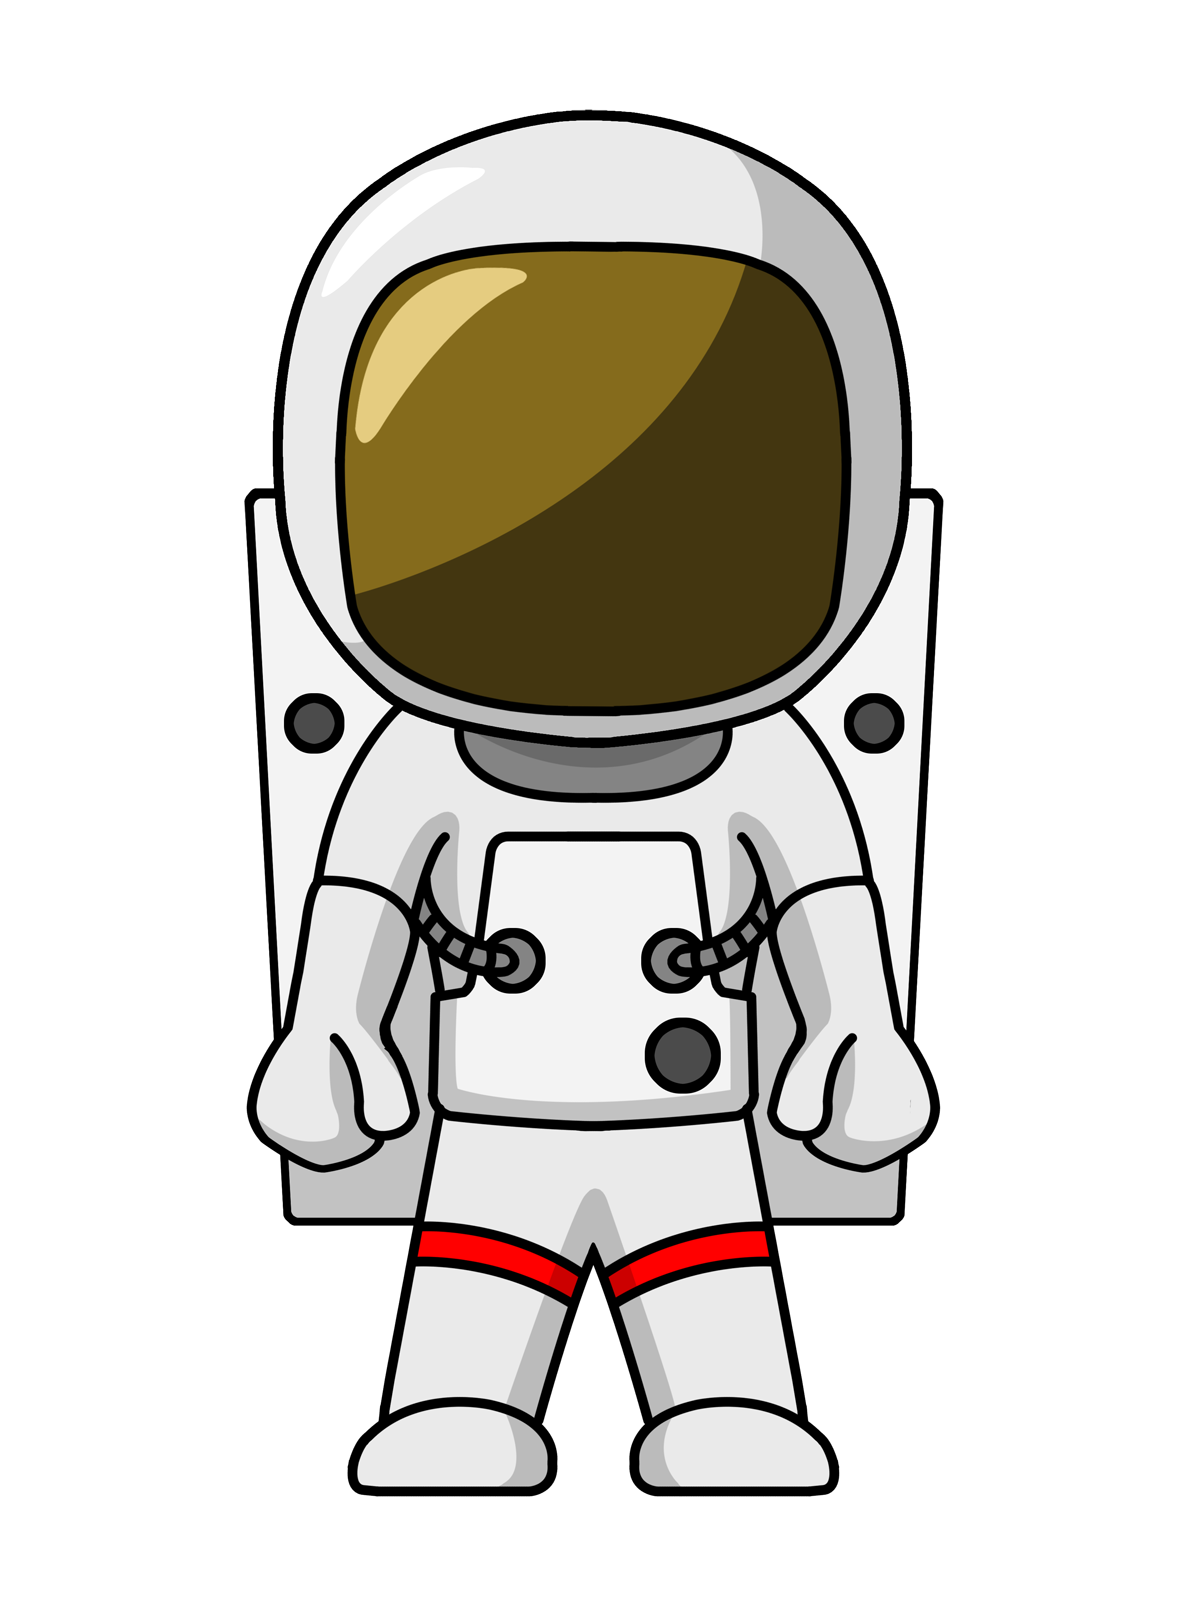 Astronaut Clip Art Images Free For Commercial Use.